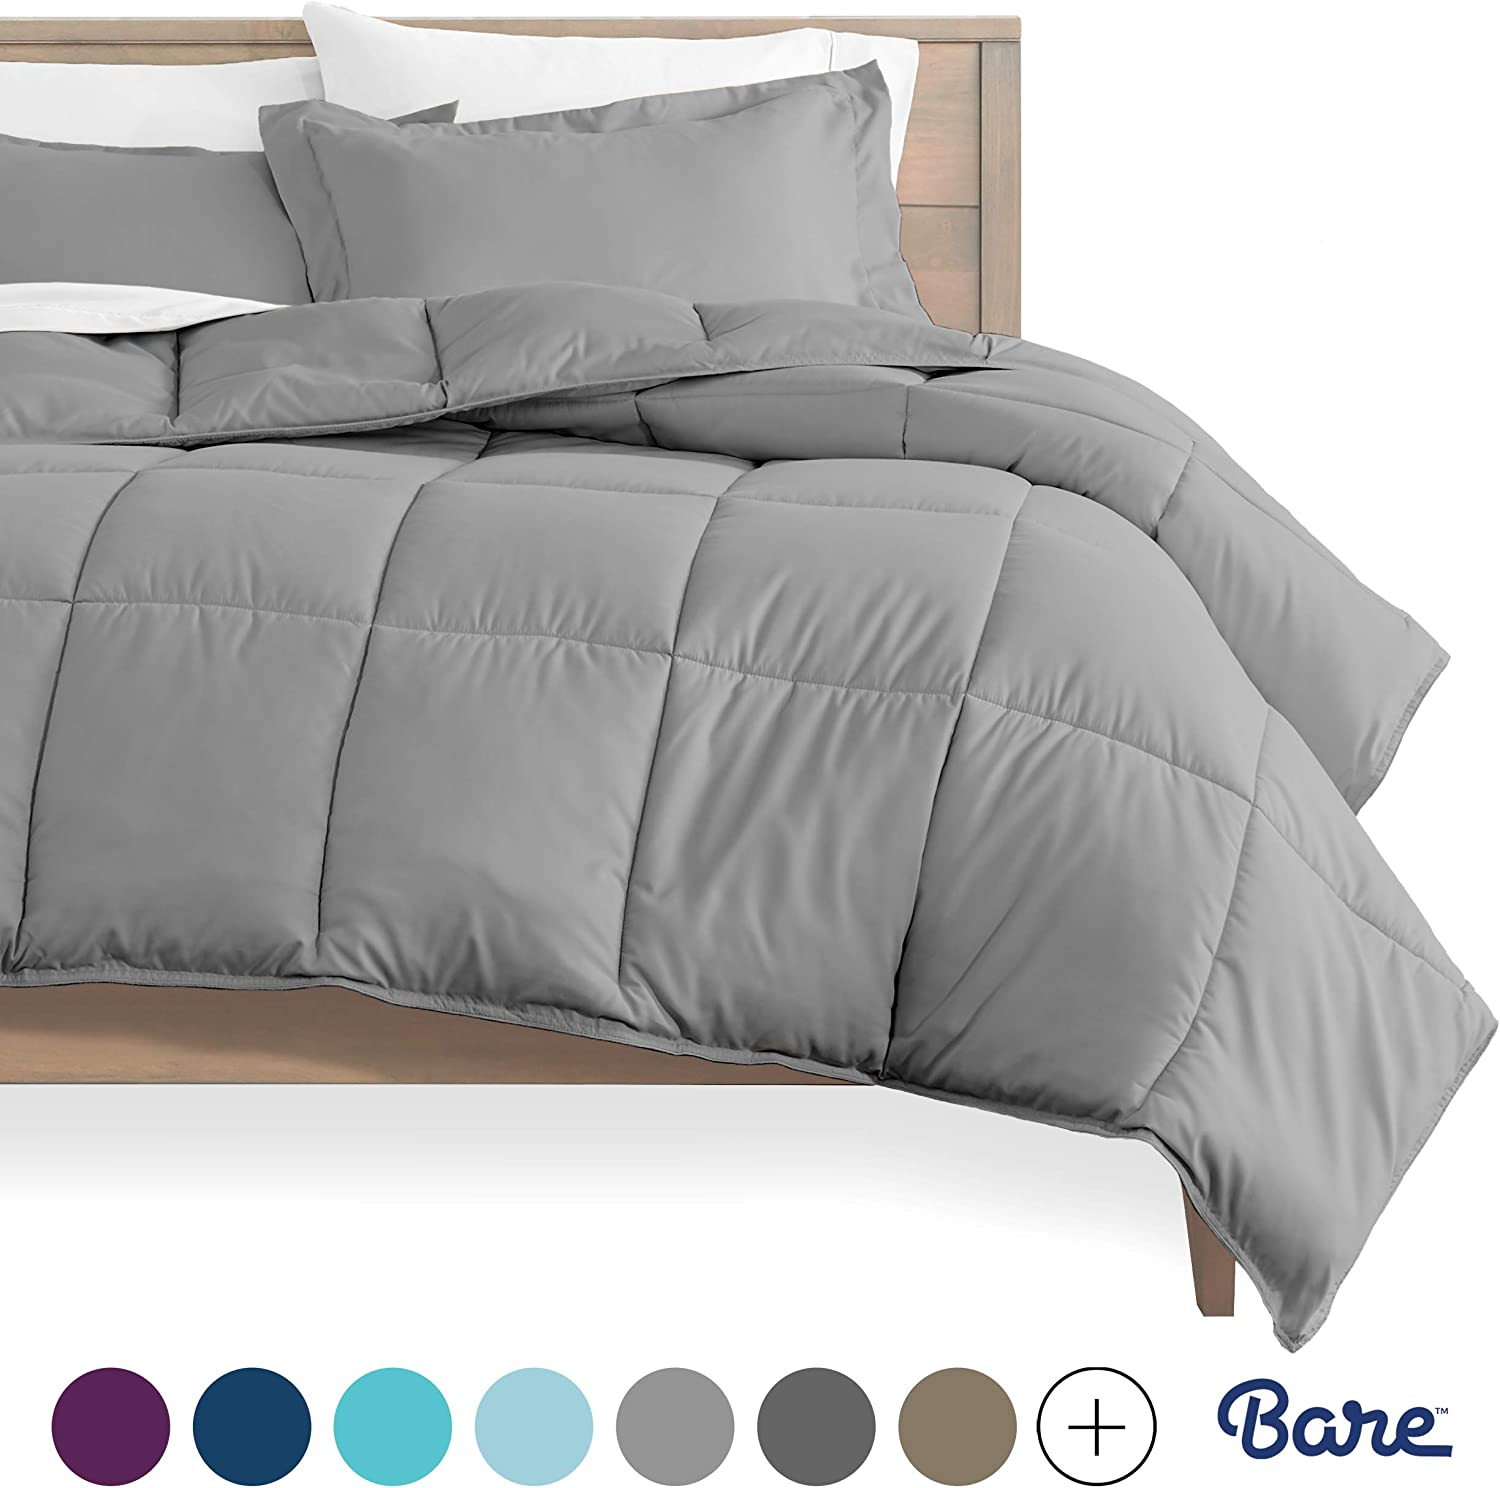 Bare Home Comforter Set - Queen Size - Goose Down Alternative - Ultra-Soft - Premium 1800 Series - Hypoallergenic - All Season Breathable Warmth (Queen, Light Grey): Home & Kitchen